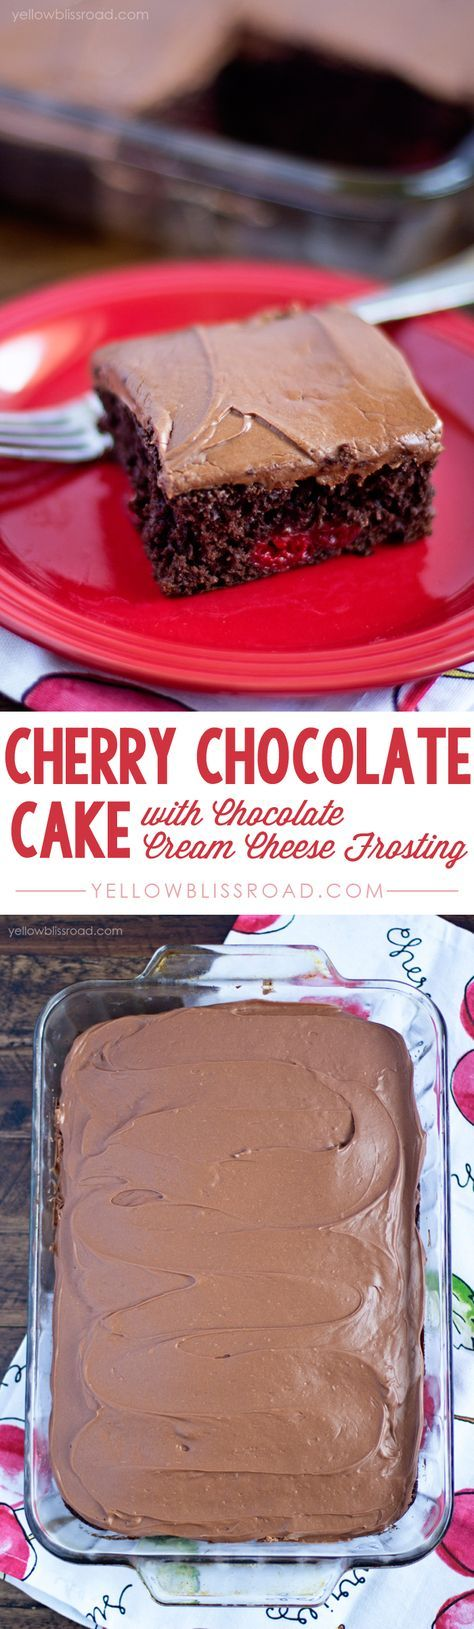 Sweet cherry pie filling combined with luscious dark chocolate cake mix, all topped with a decadent Chocolate Cream Cheese Frosting. easily siami, replace just one egg